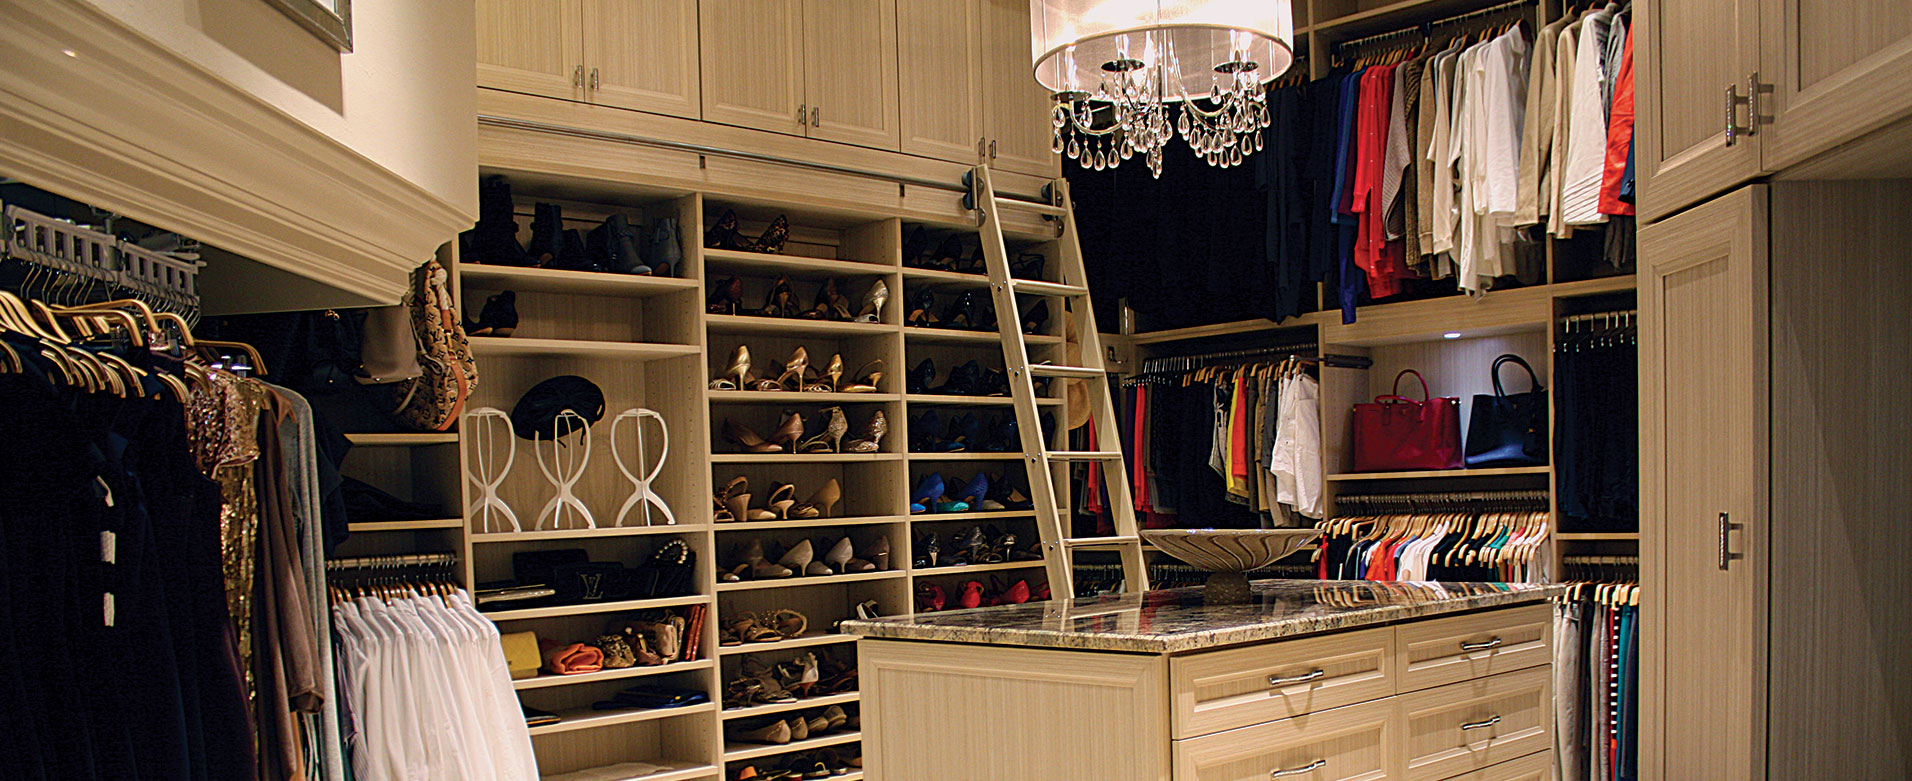 Home | All About Closets, Inc.